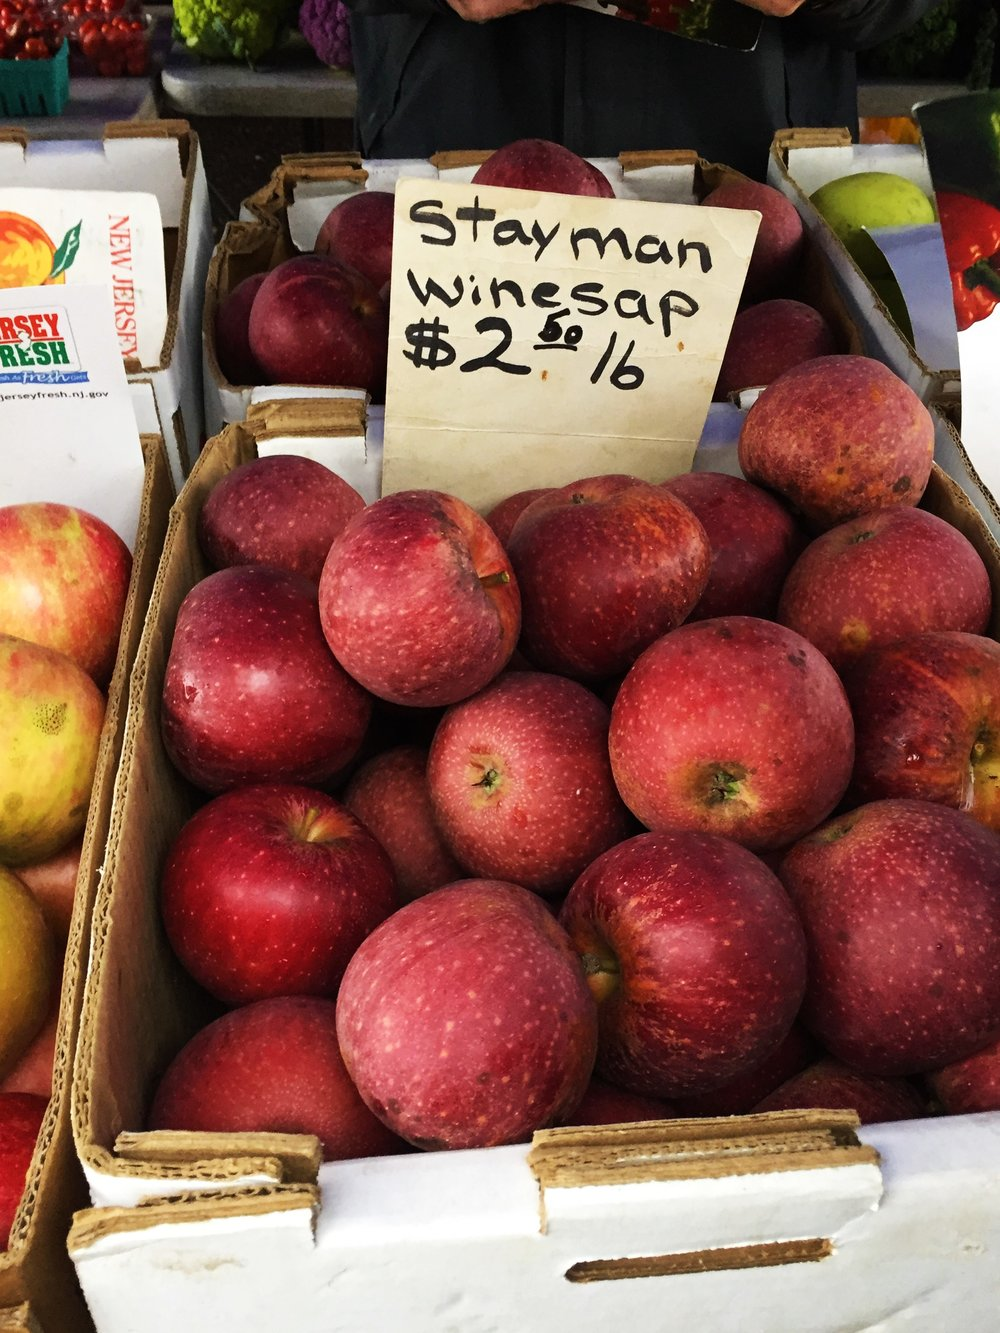 stayman winesap apples